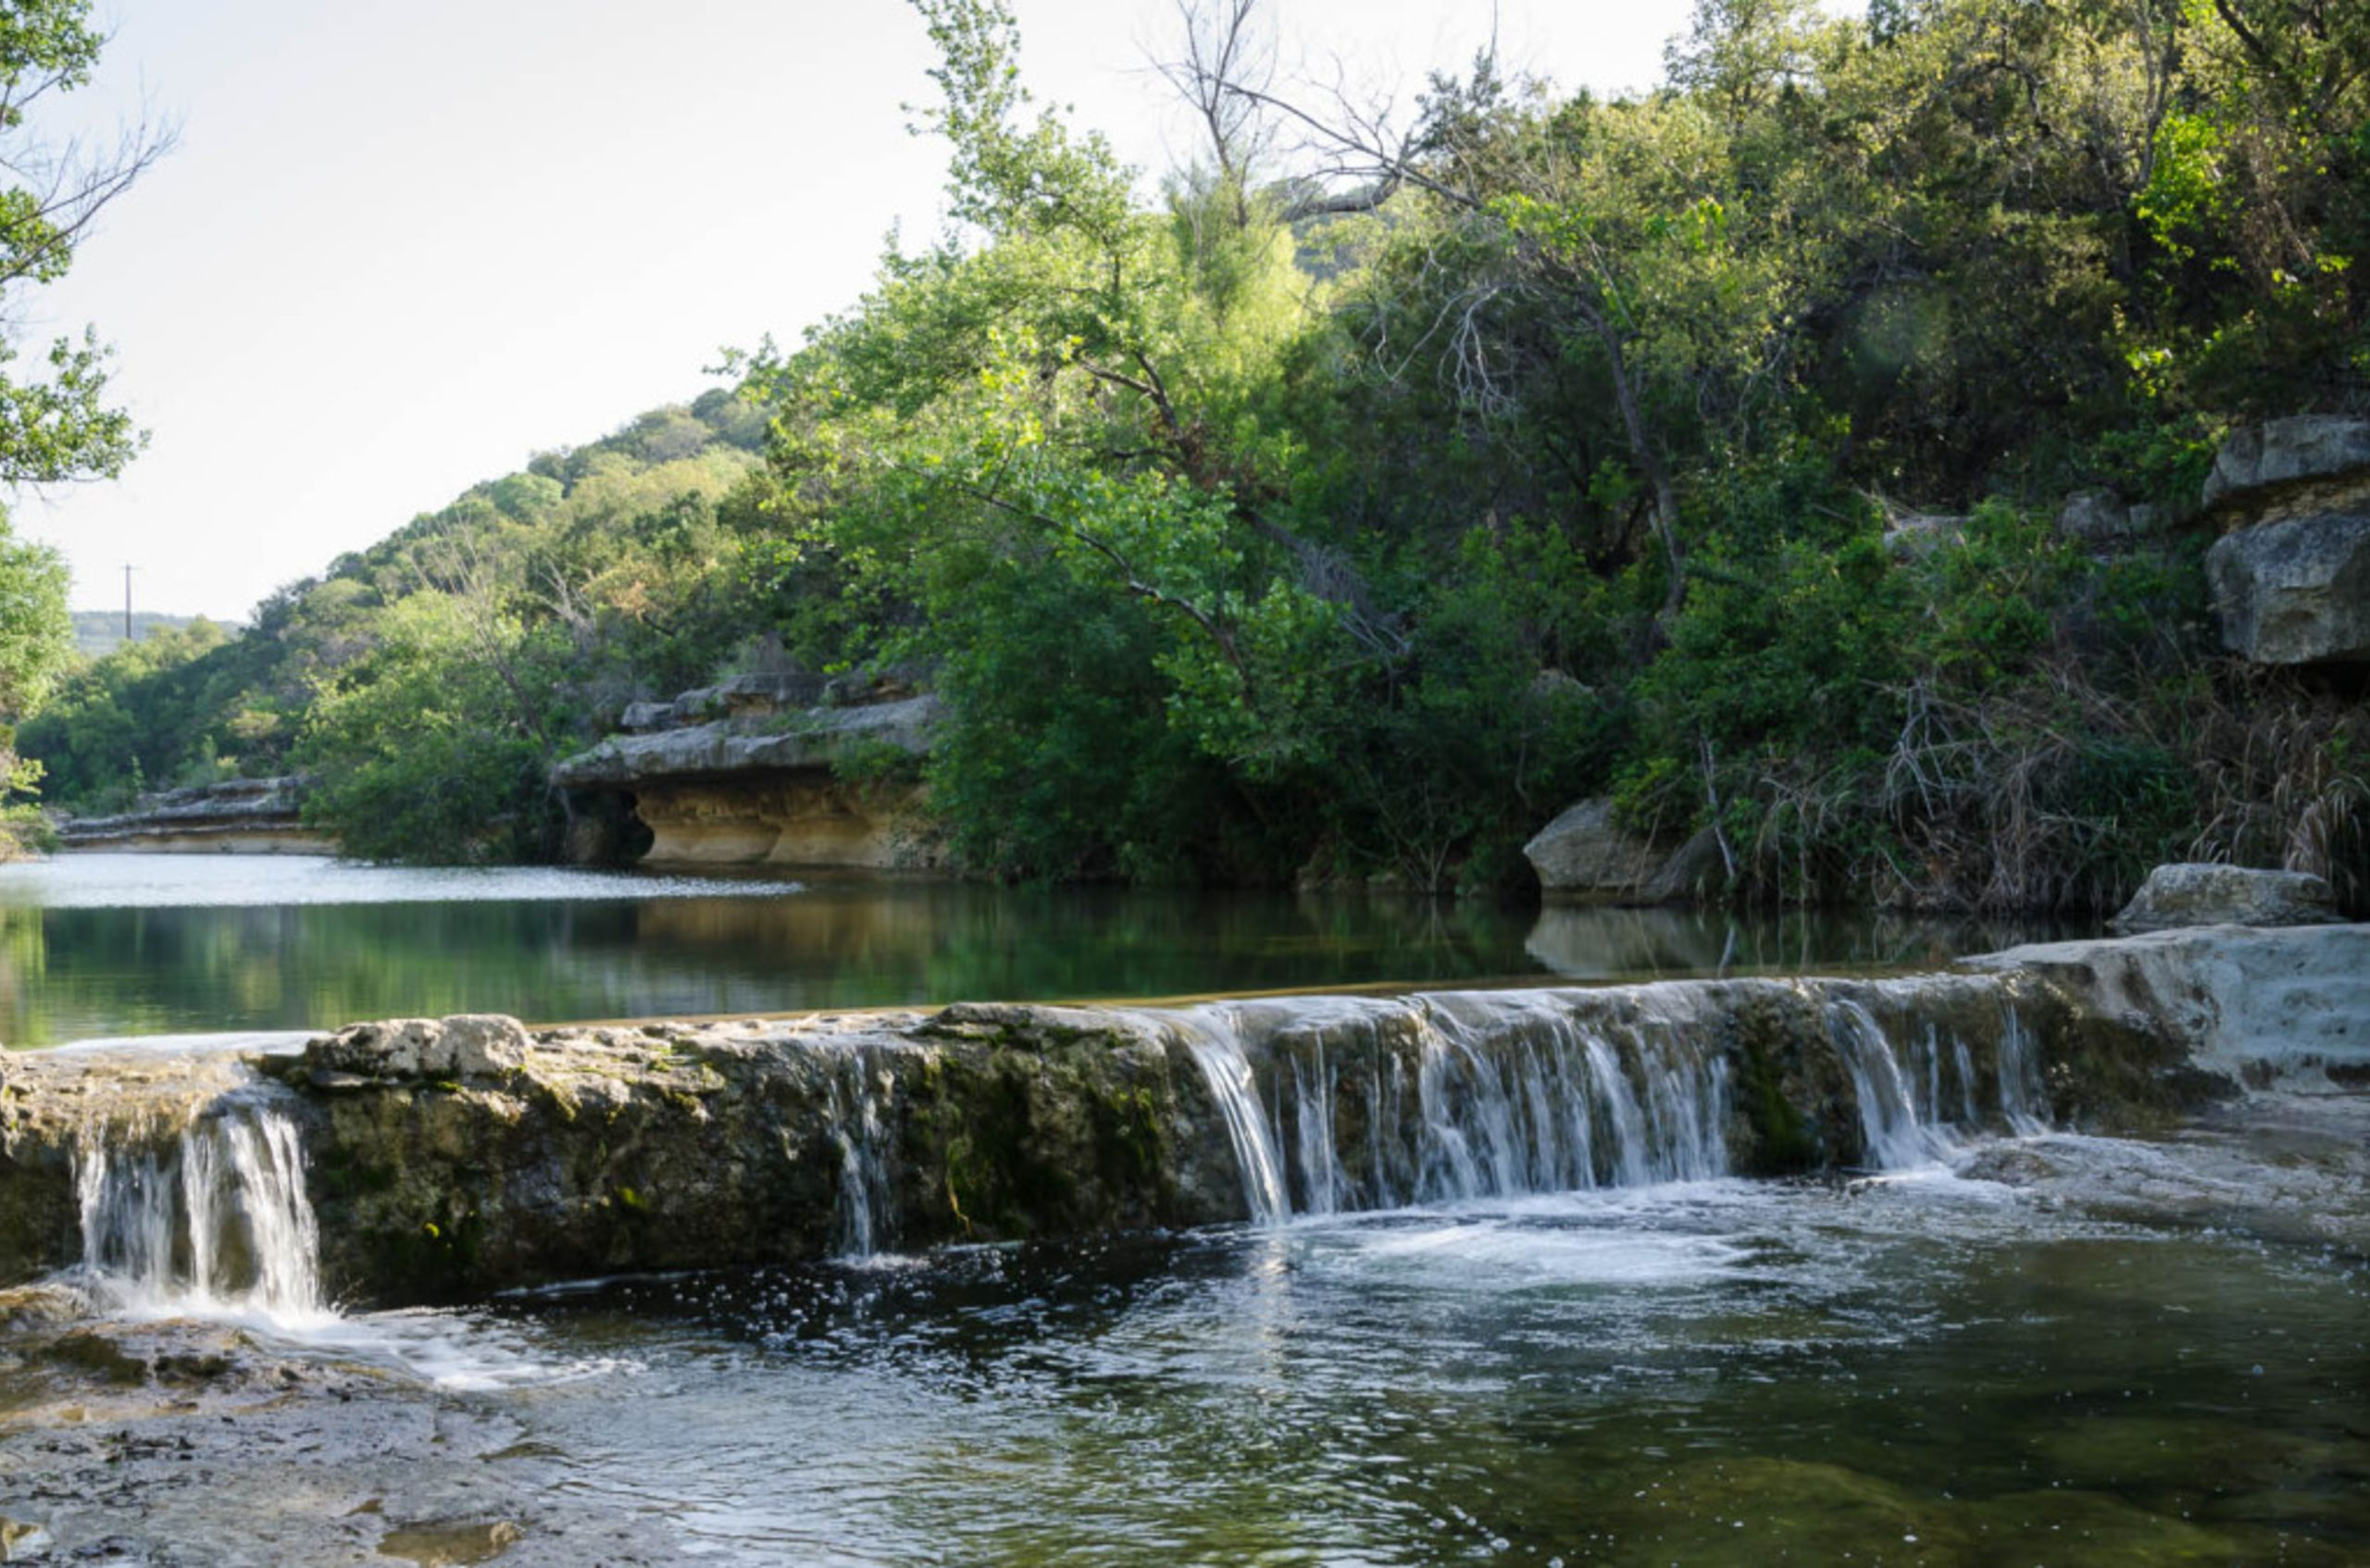 Discover the natural beauty of Barton Creek Greenbelt